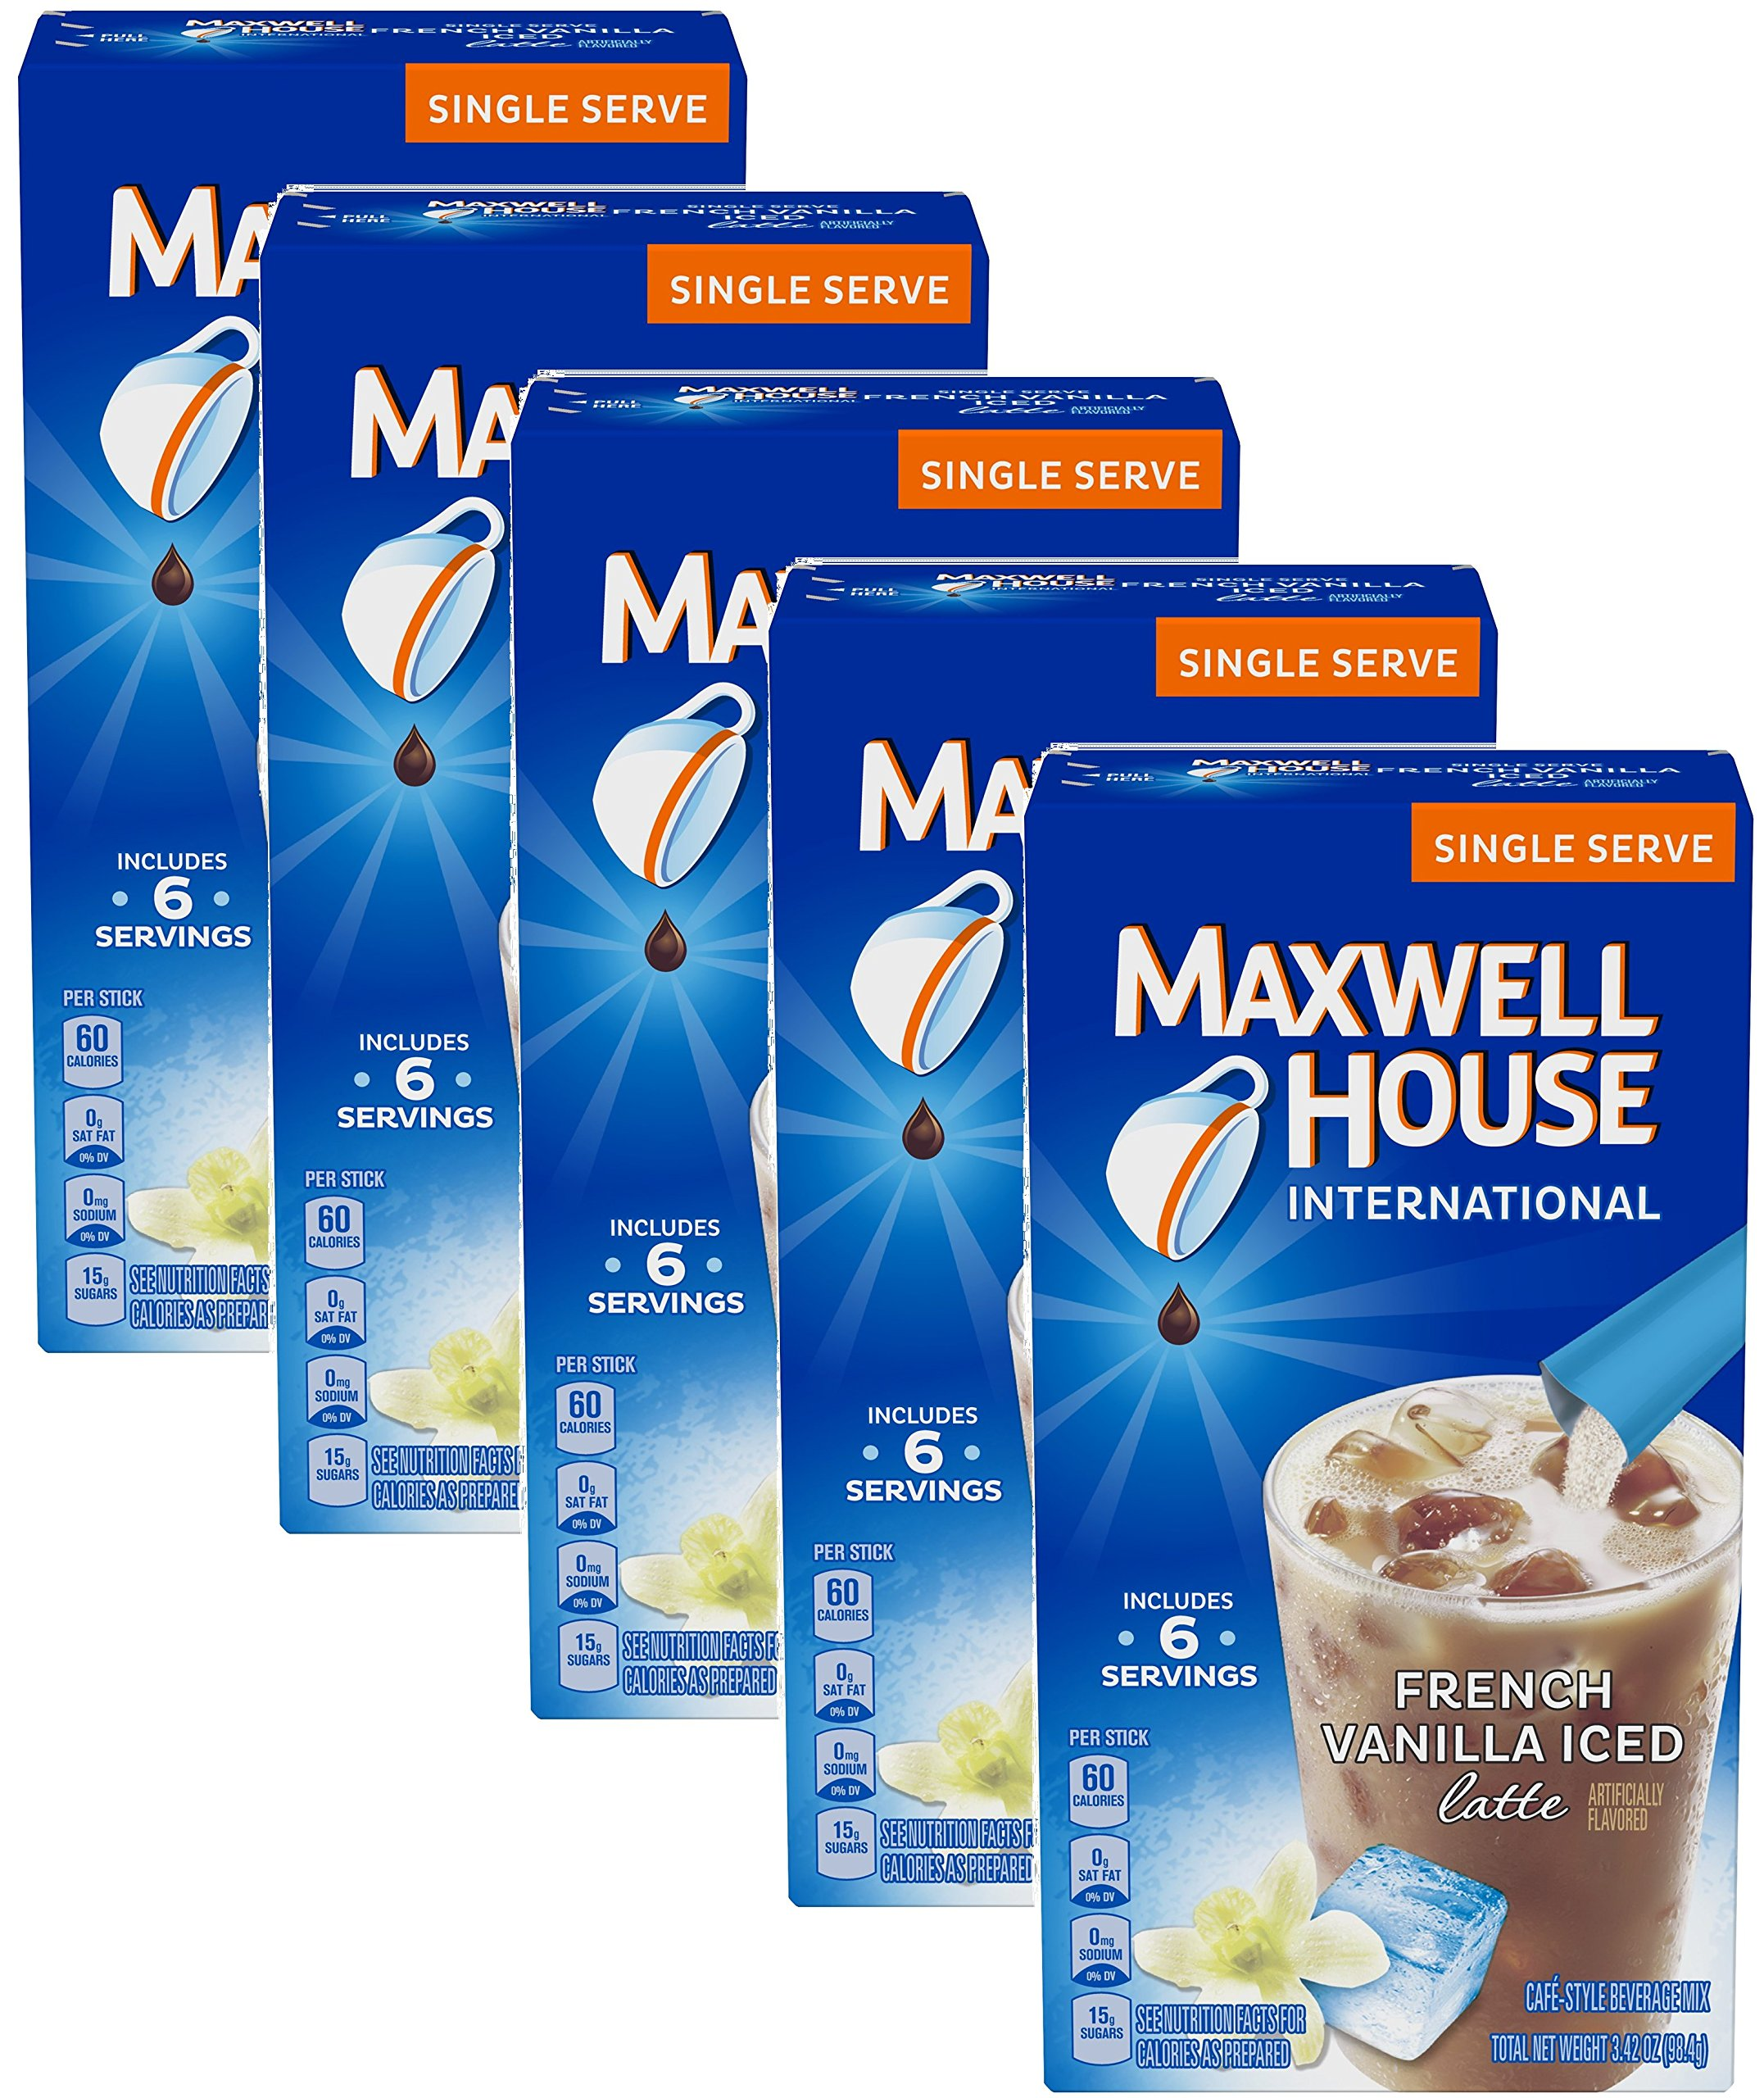 Maxwell House International Cafe Iced Latte Cafe-Style Beverage Mix, Single Serve Packets, 3.42 OZ, French Vanilla 6 ea (pack of 5)